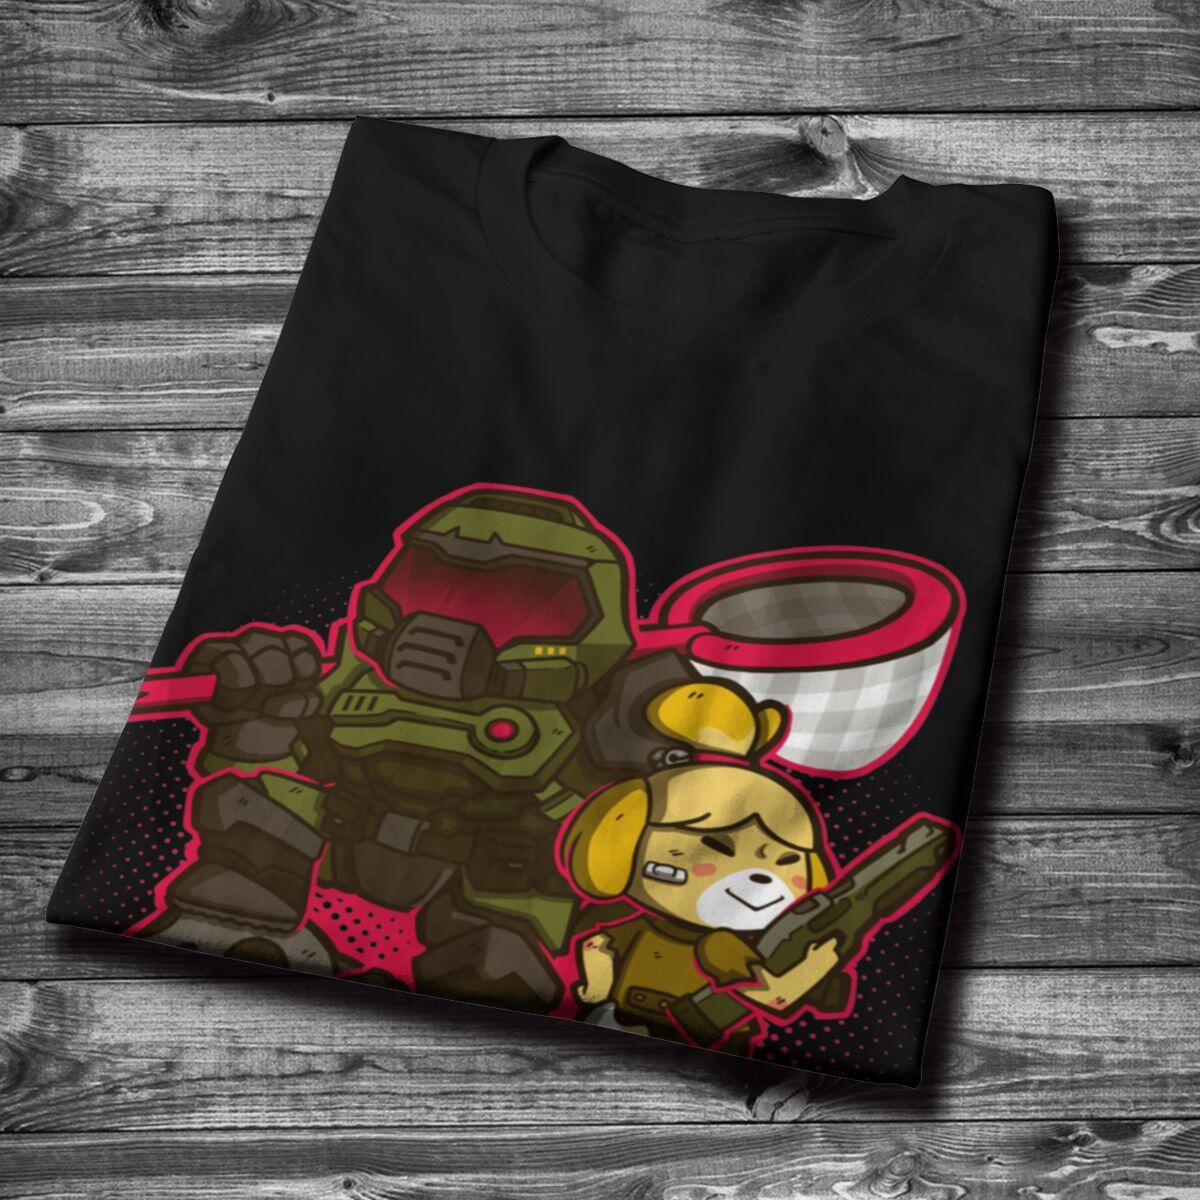 Animal Crossing Bug Off Isabelle and Doom Guy Shirt, Black / XXXL